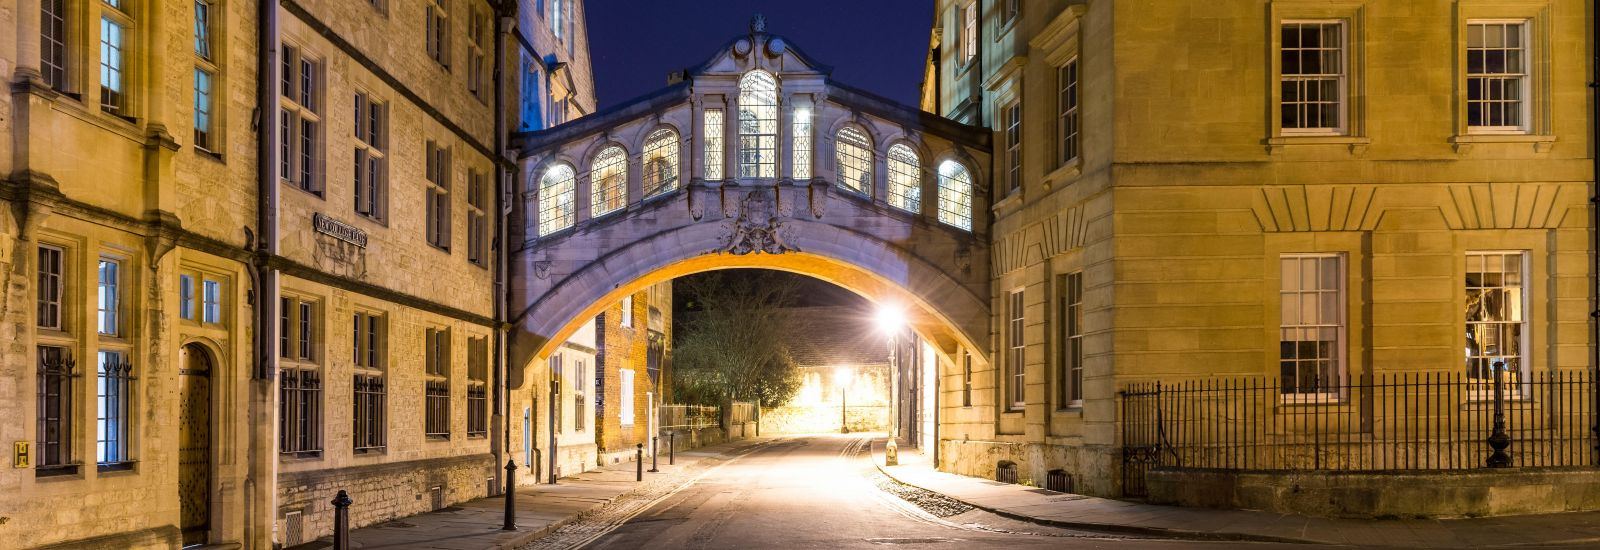 New College Lane and the Bridge of Sighs at night